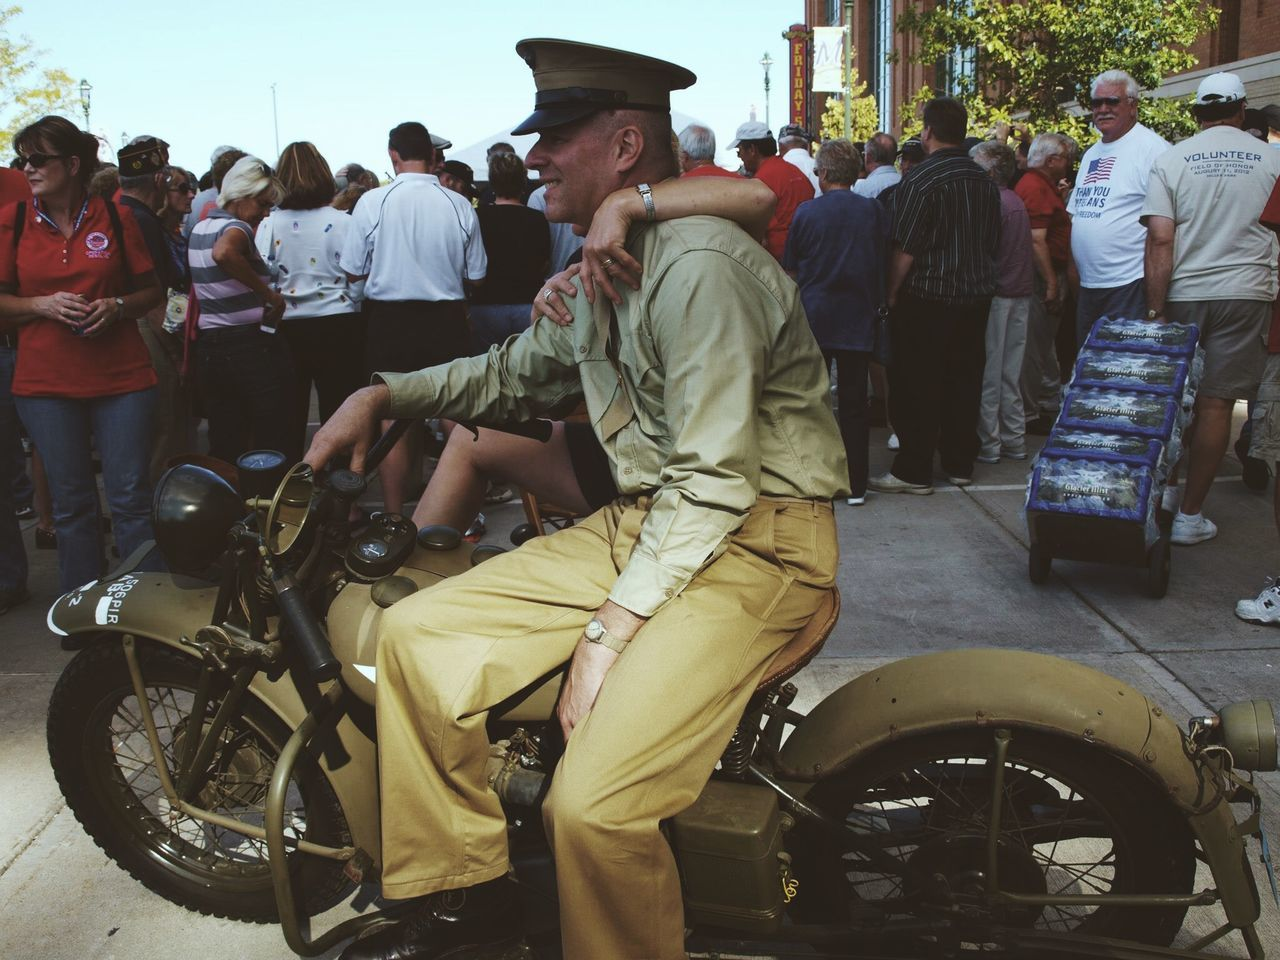 Beautiful stock photos of veteran's day, adults only, people, outdoors, adult